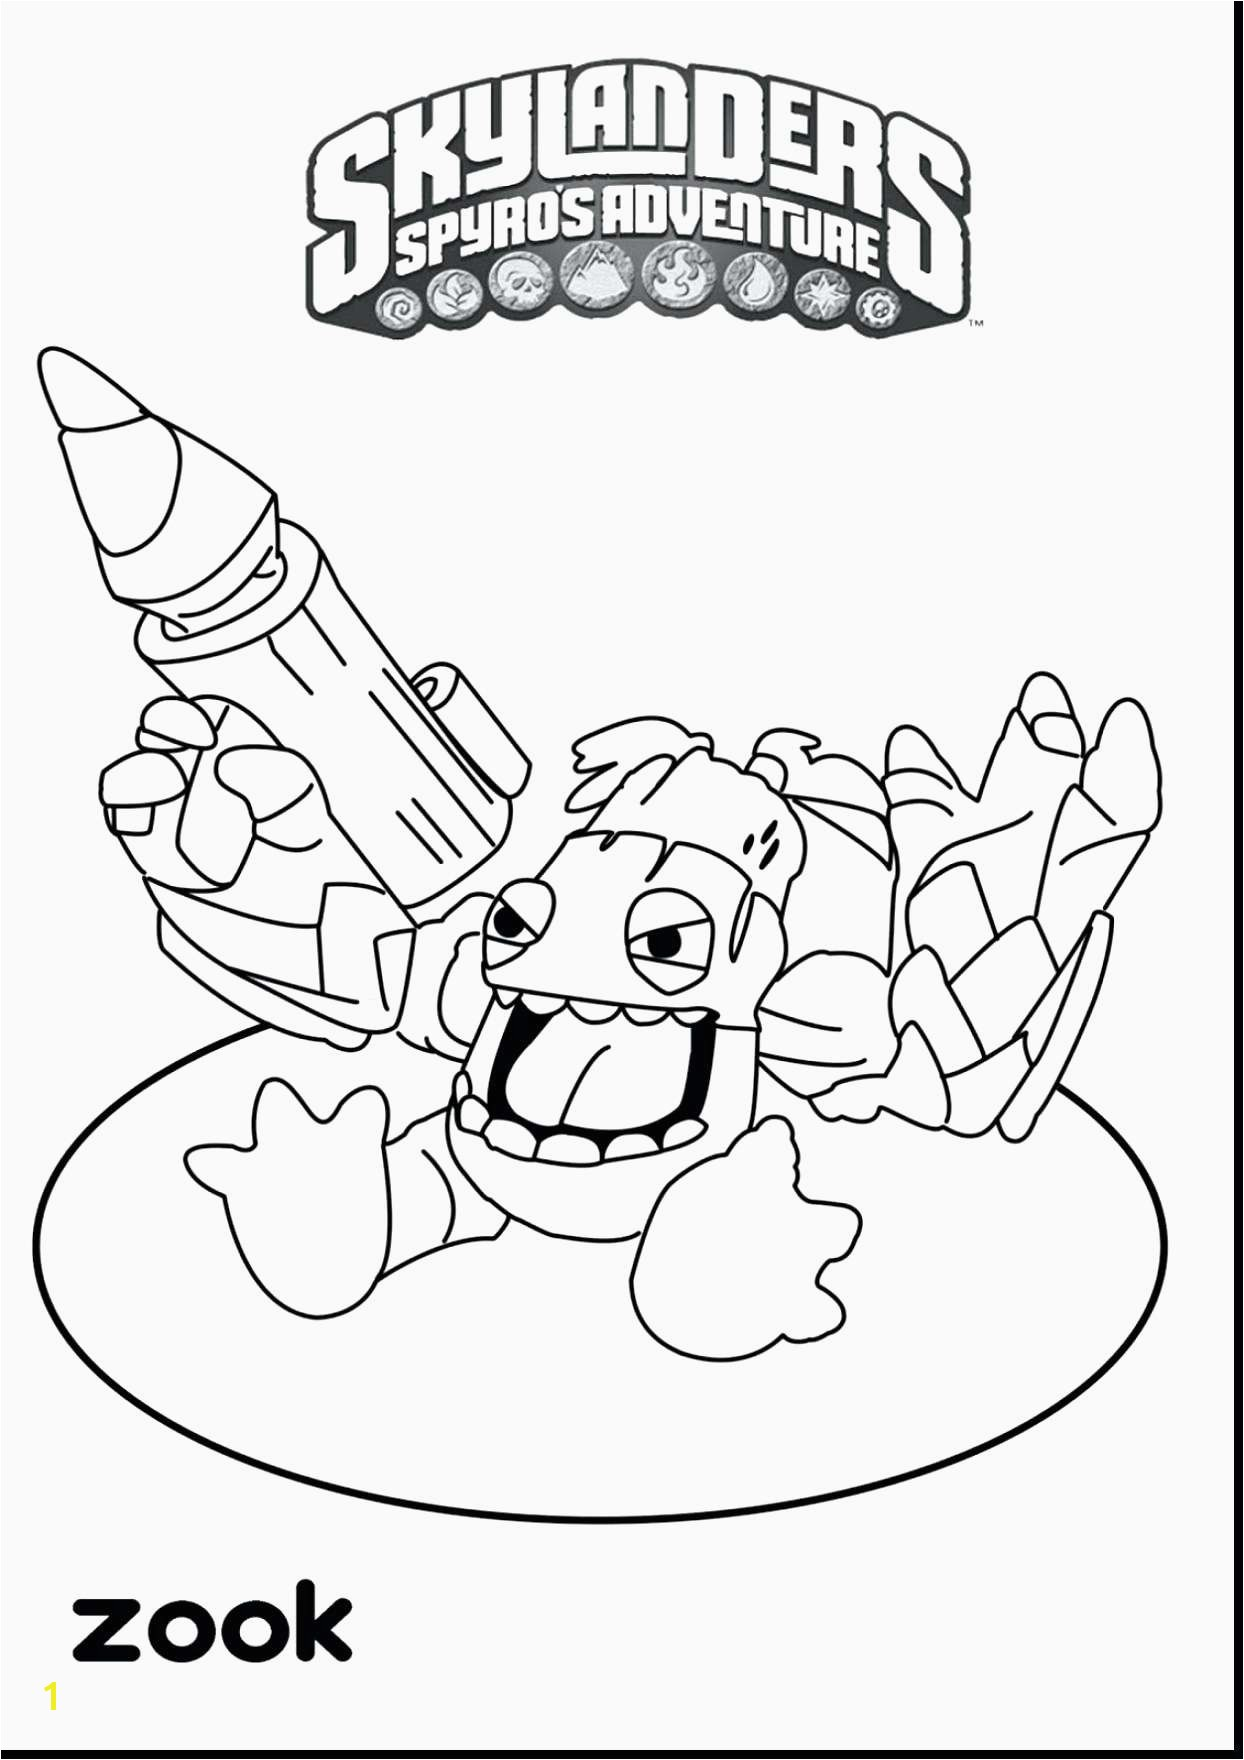 Cool Coloring Printables 0d – Fun Time – Coloring Sheets Collection Christmas Coloring Pages for